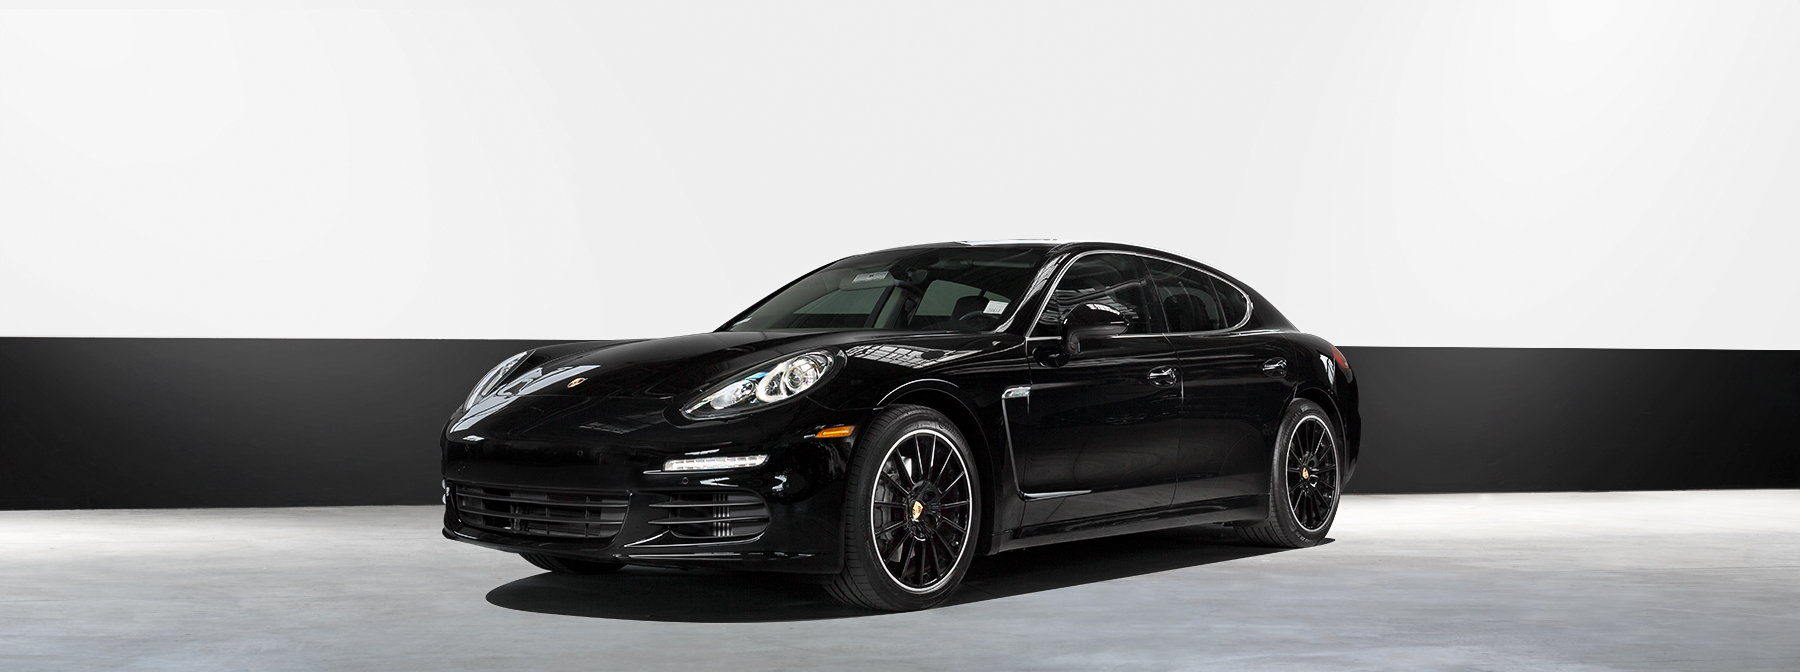 The porsche panamera v6 rental has been one of the more popular vehicles in our fleet this year this is a 4 door luxury sports sedan and one of the most